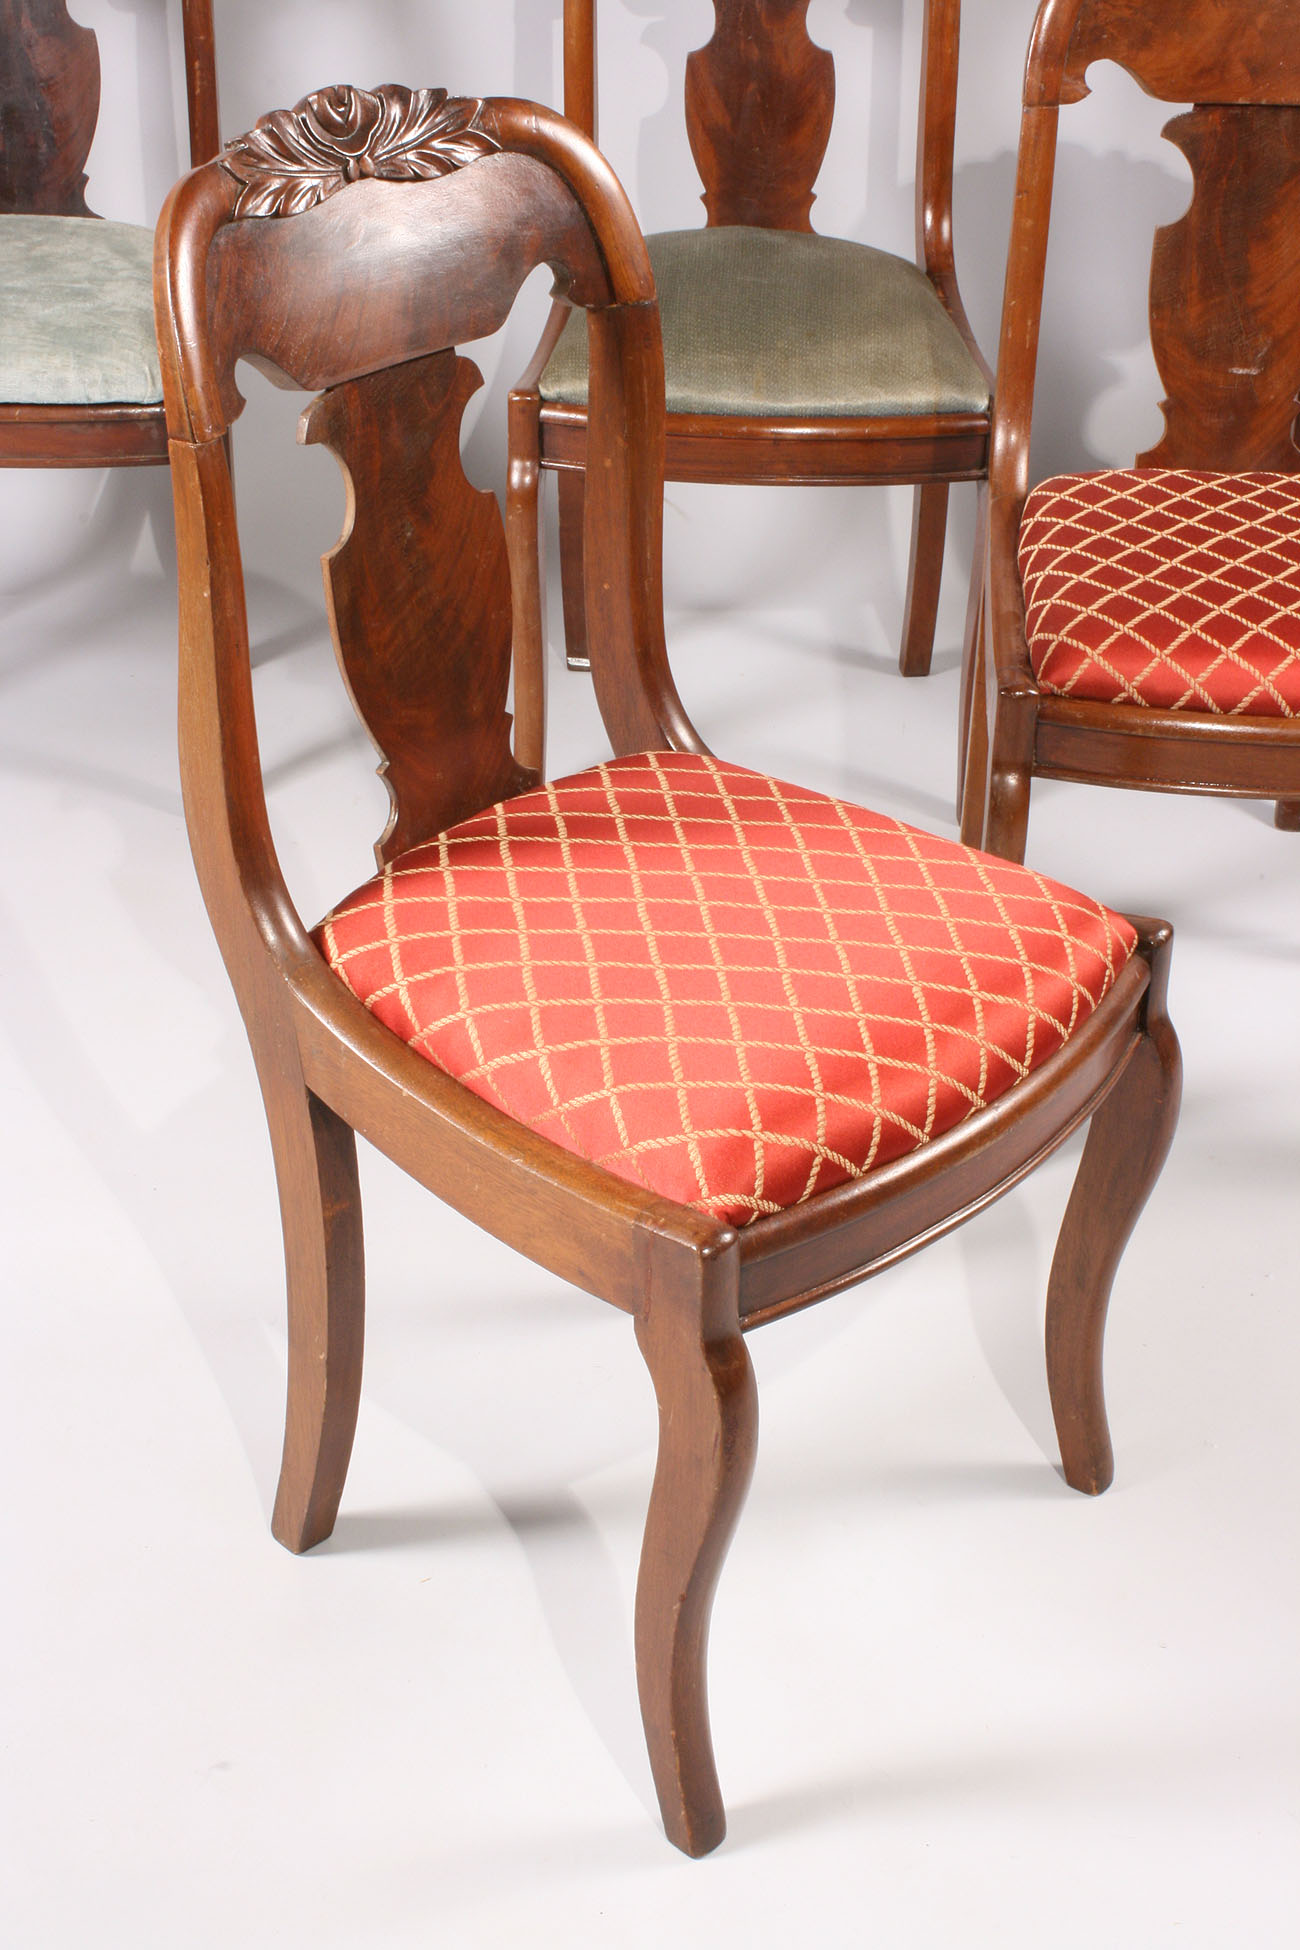 Antique Dining Chairs For Sale Dublin